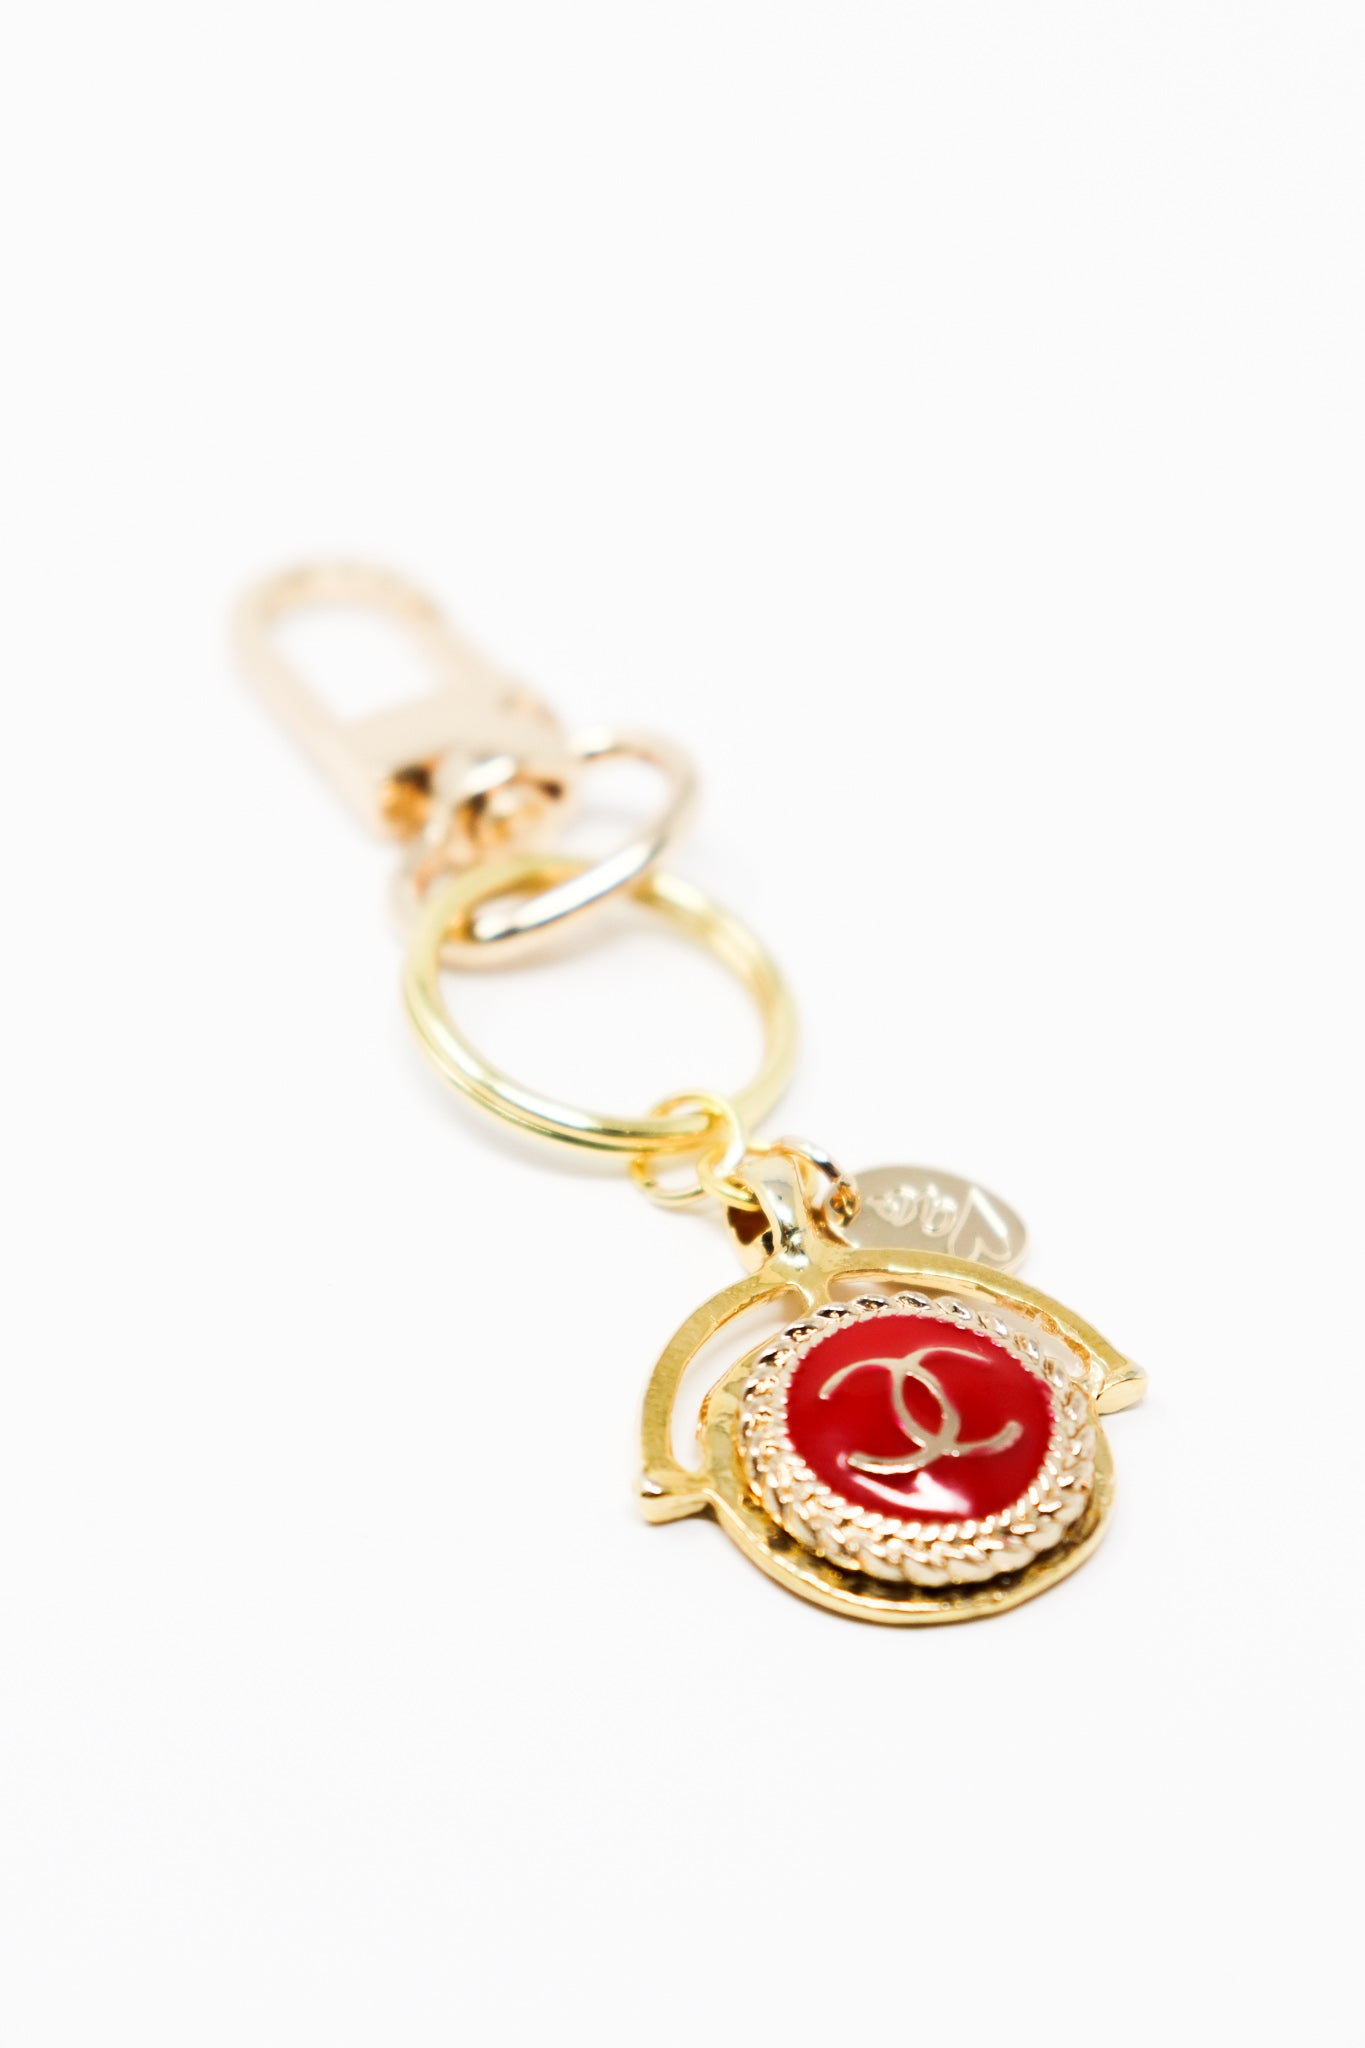 Chanel Designer Red Keepsake Key Chain - Gabrielle's Biloxi